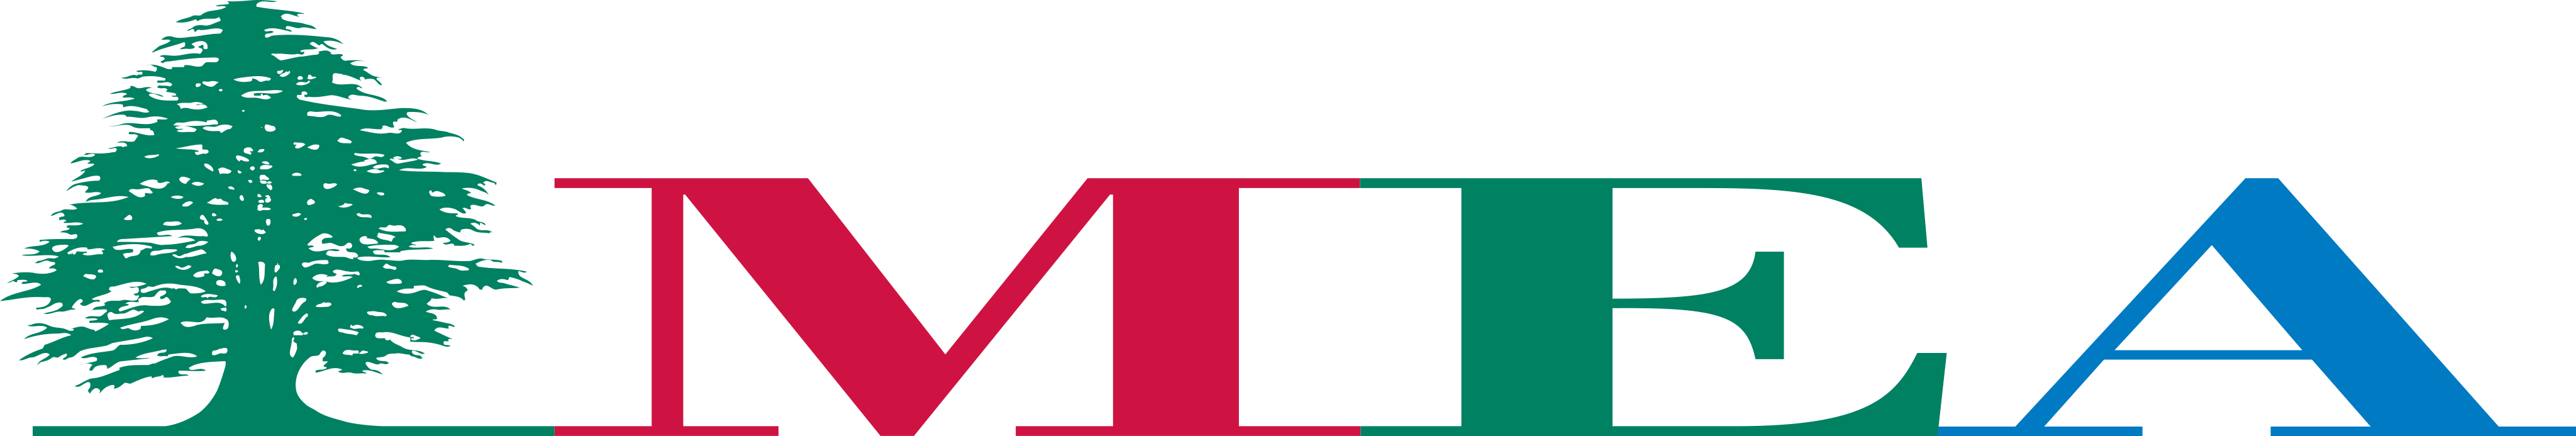 middle east airlines - Middle East Airlines Logo